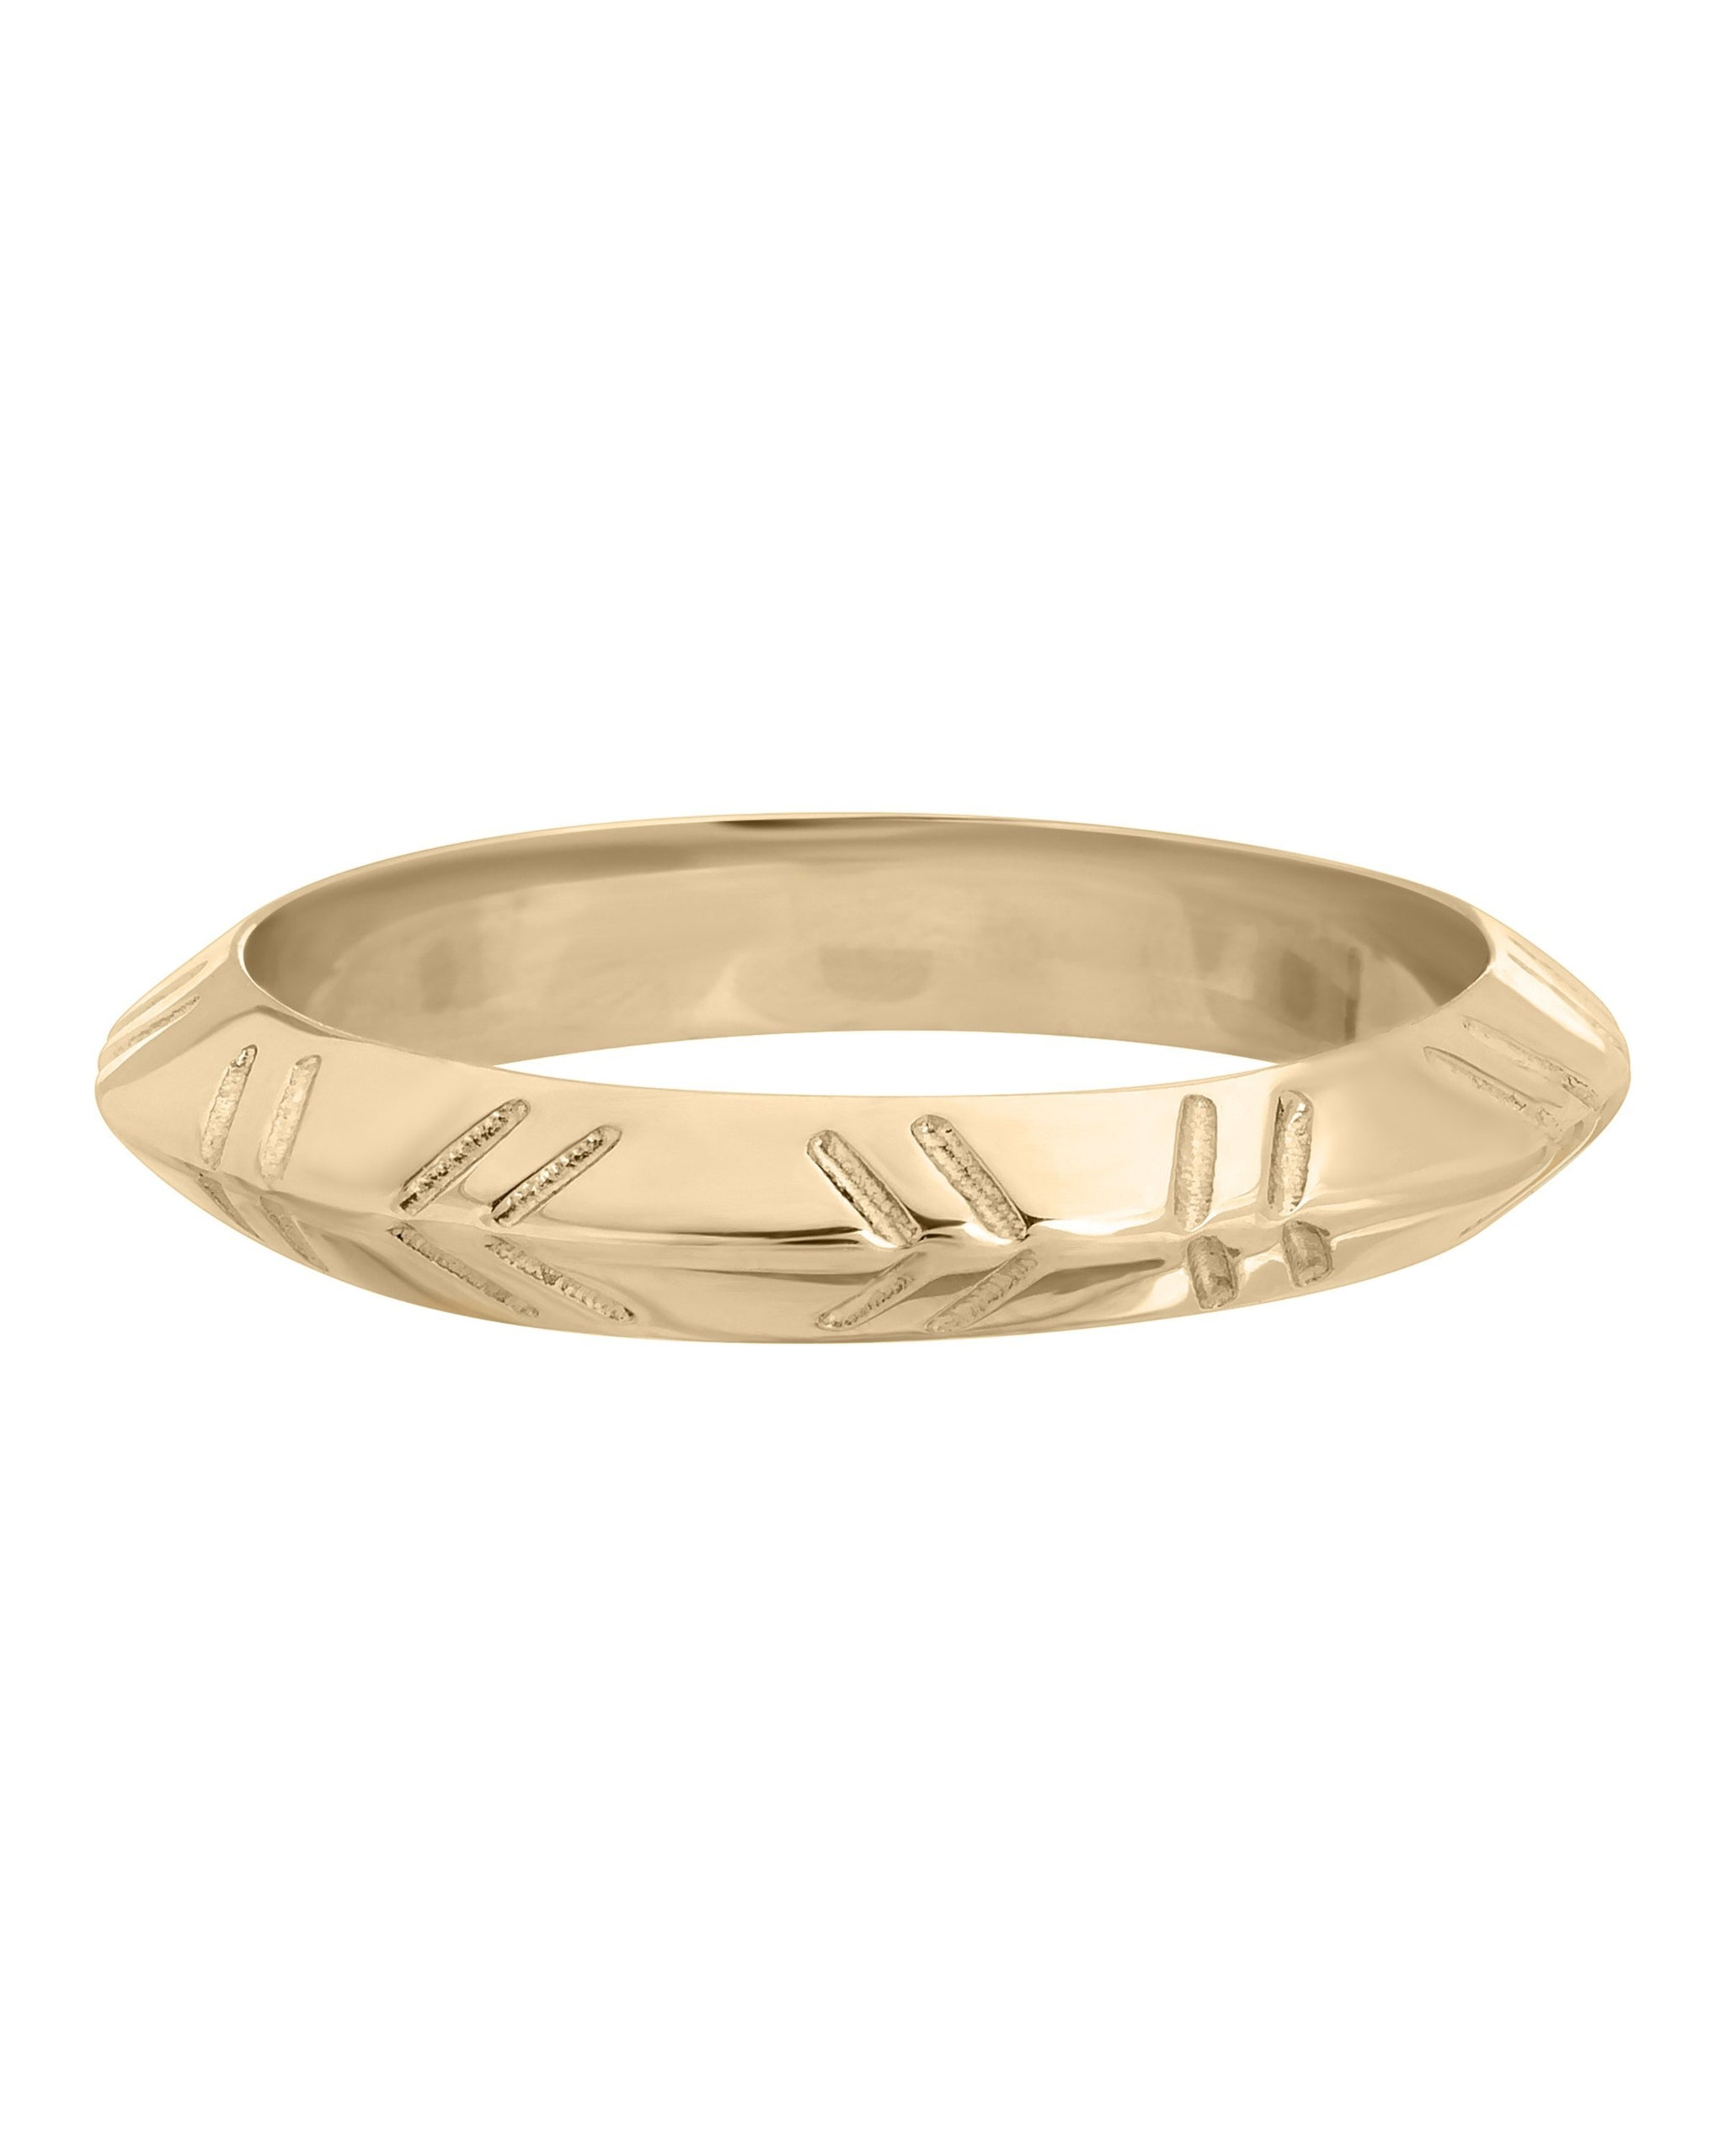 ECHO RING - 14K YELLOW GOLD